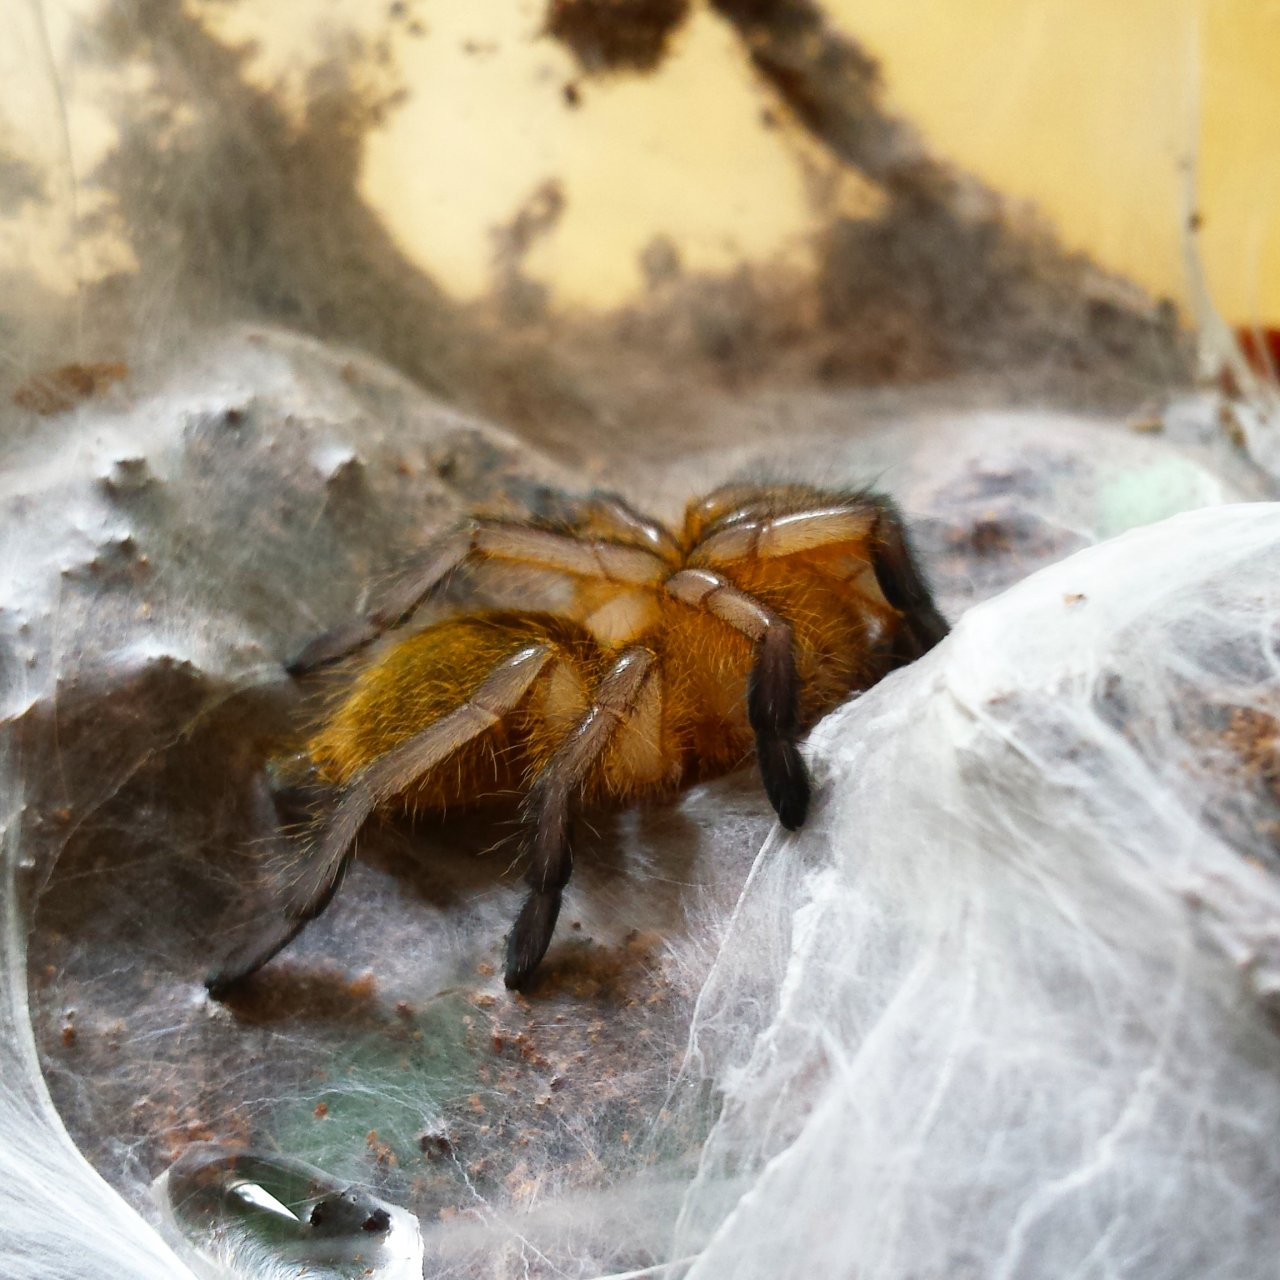 Freshly Molted... H. pulchripes